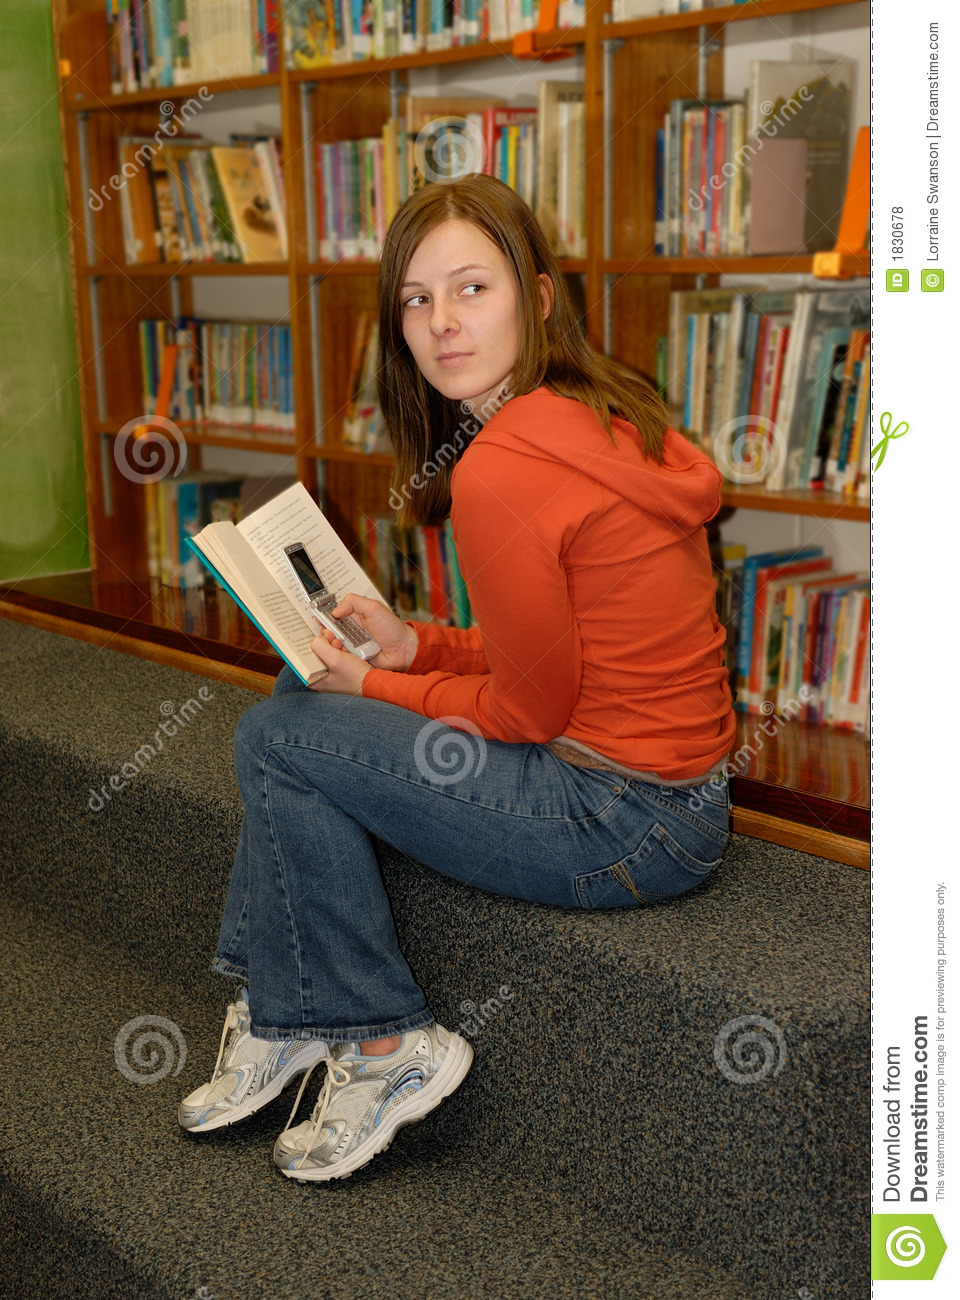 Smart College Girl Wallpaper Teen Girl In Library Hiding Cell Phone Royalty Free Stock